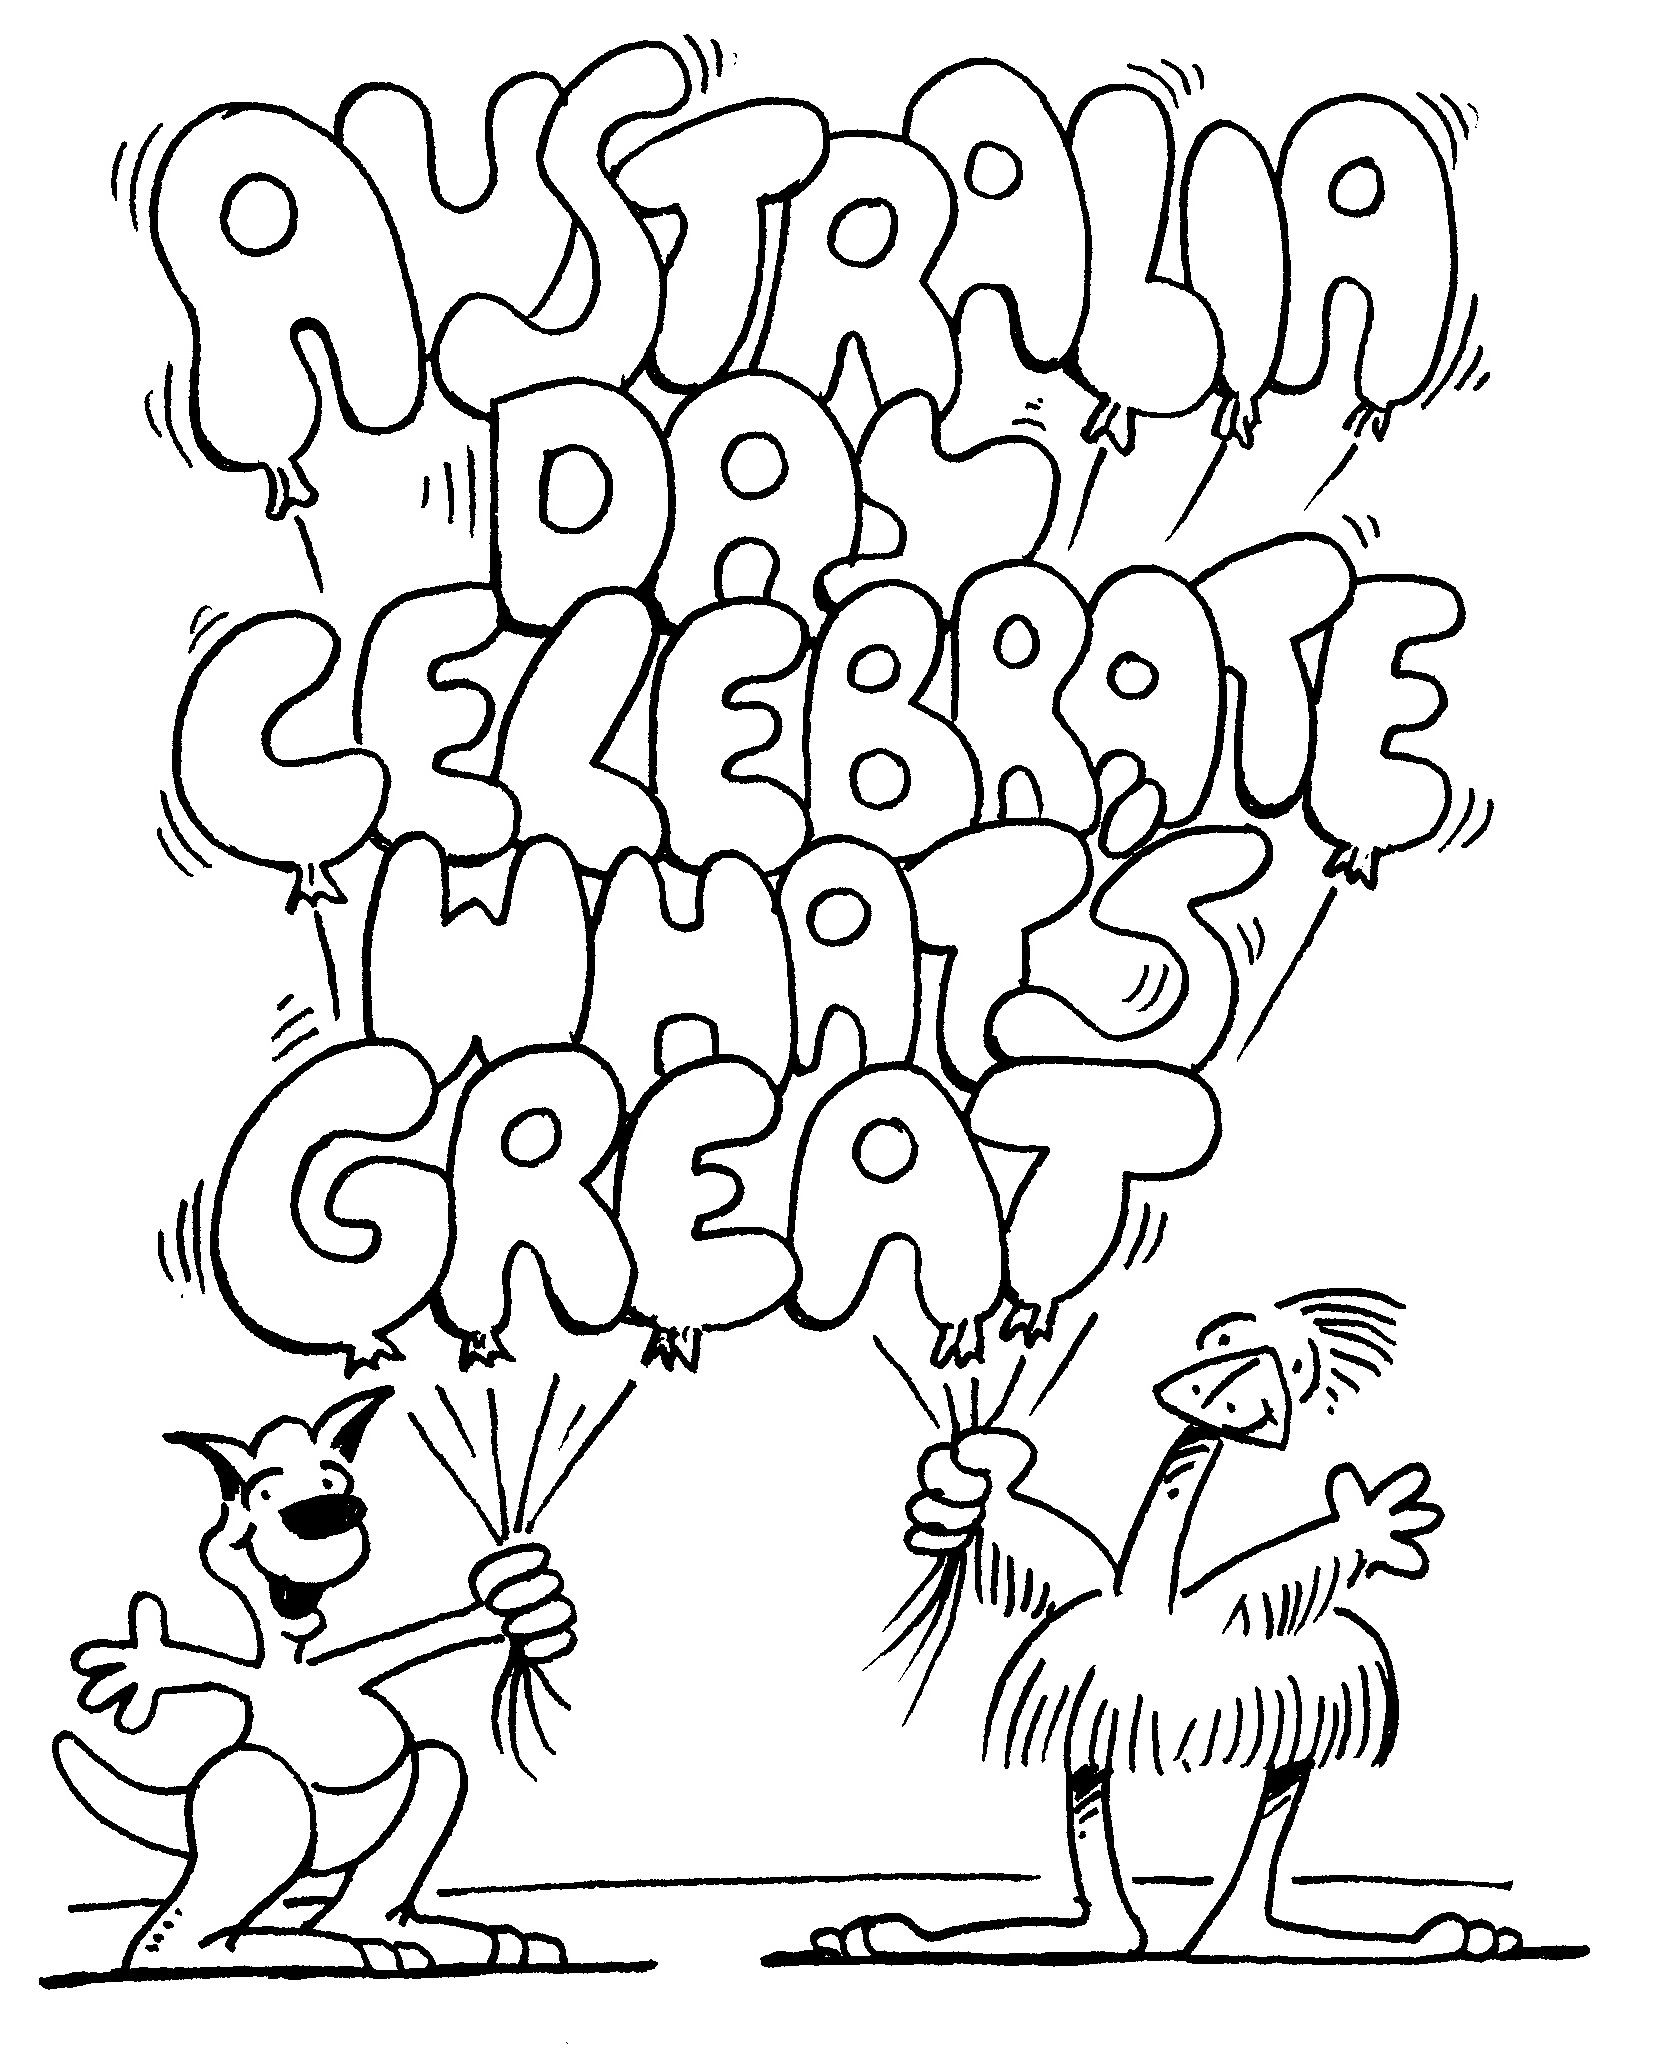 Australia Day Celebrate Whats Great Coloring For Kids Australia